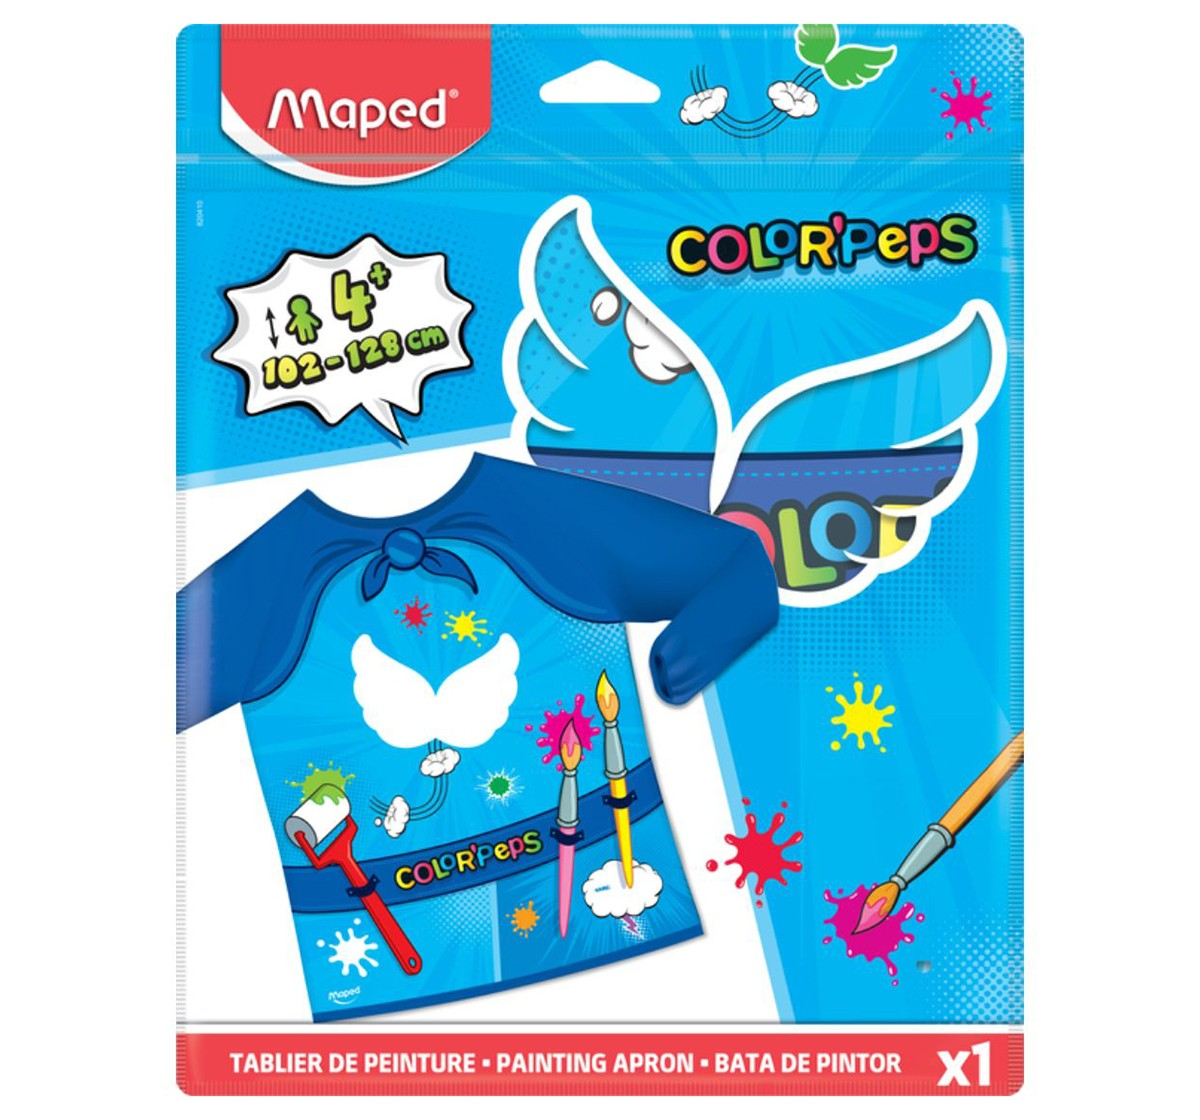 Maped Super Heroes Painting Apron, Unisex 4Y+ (Blue)